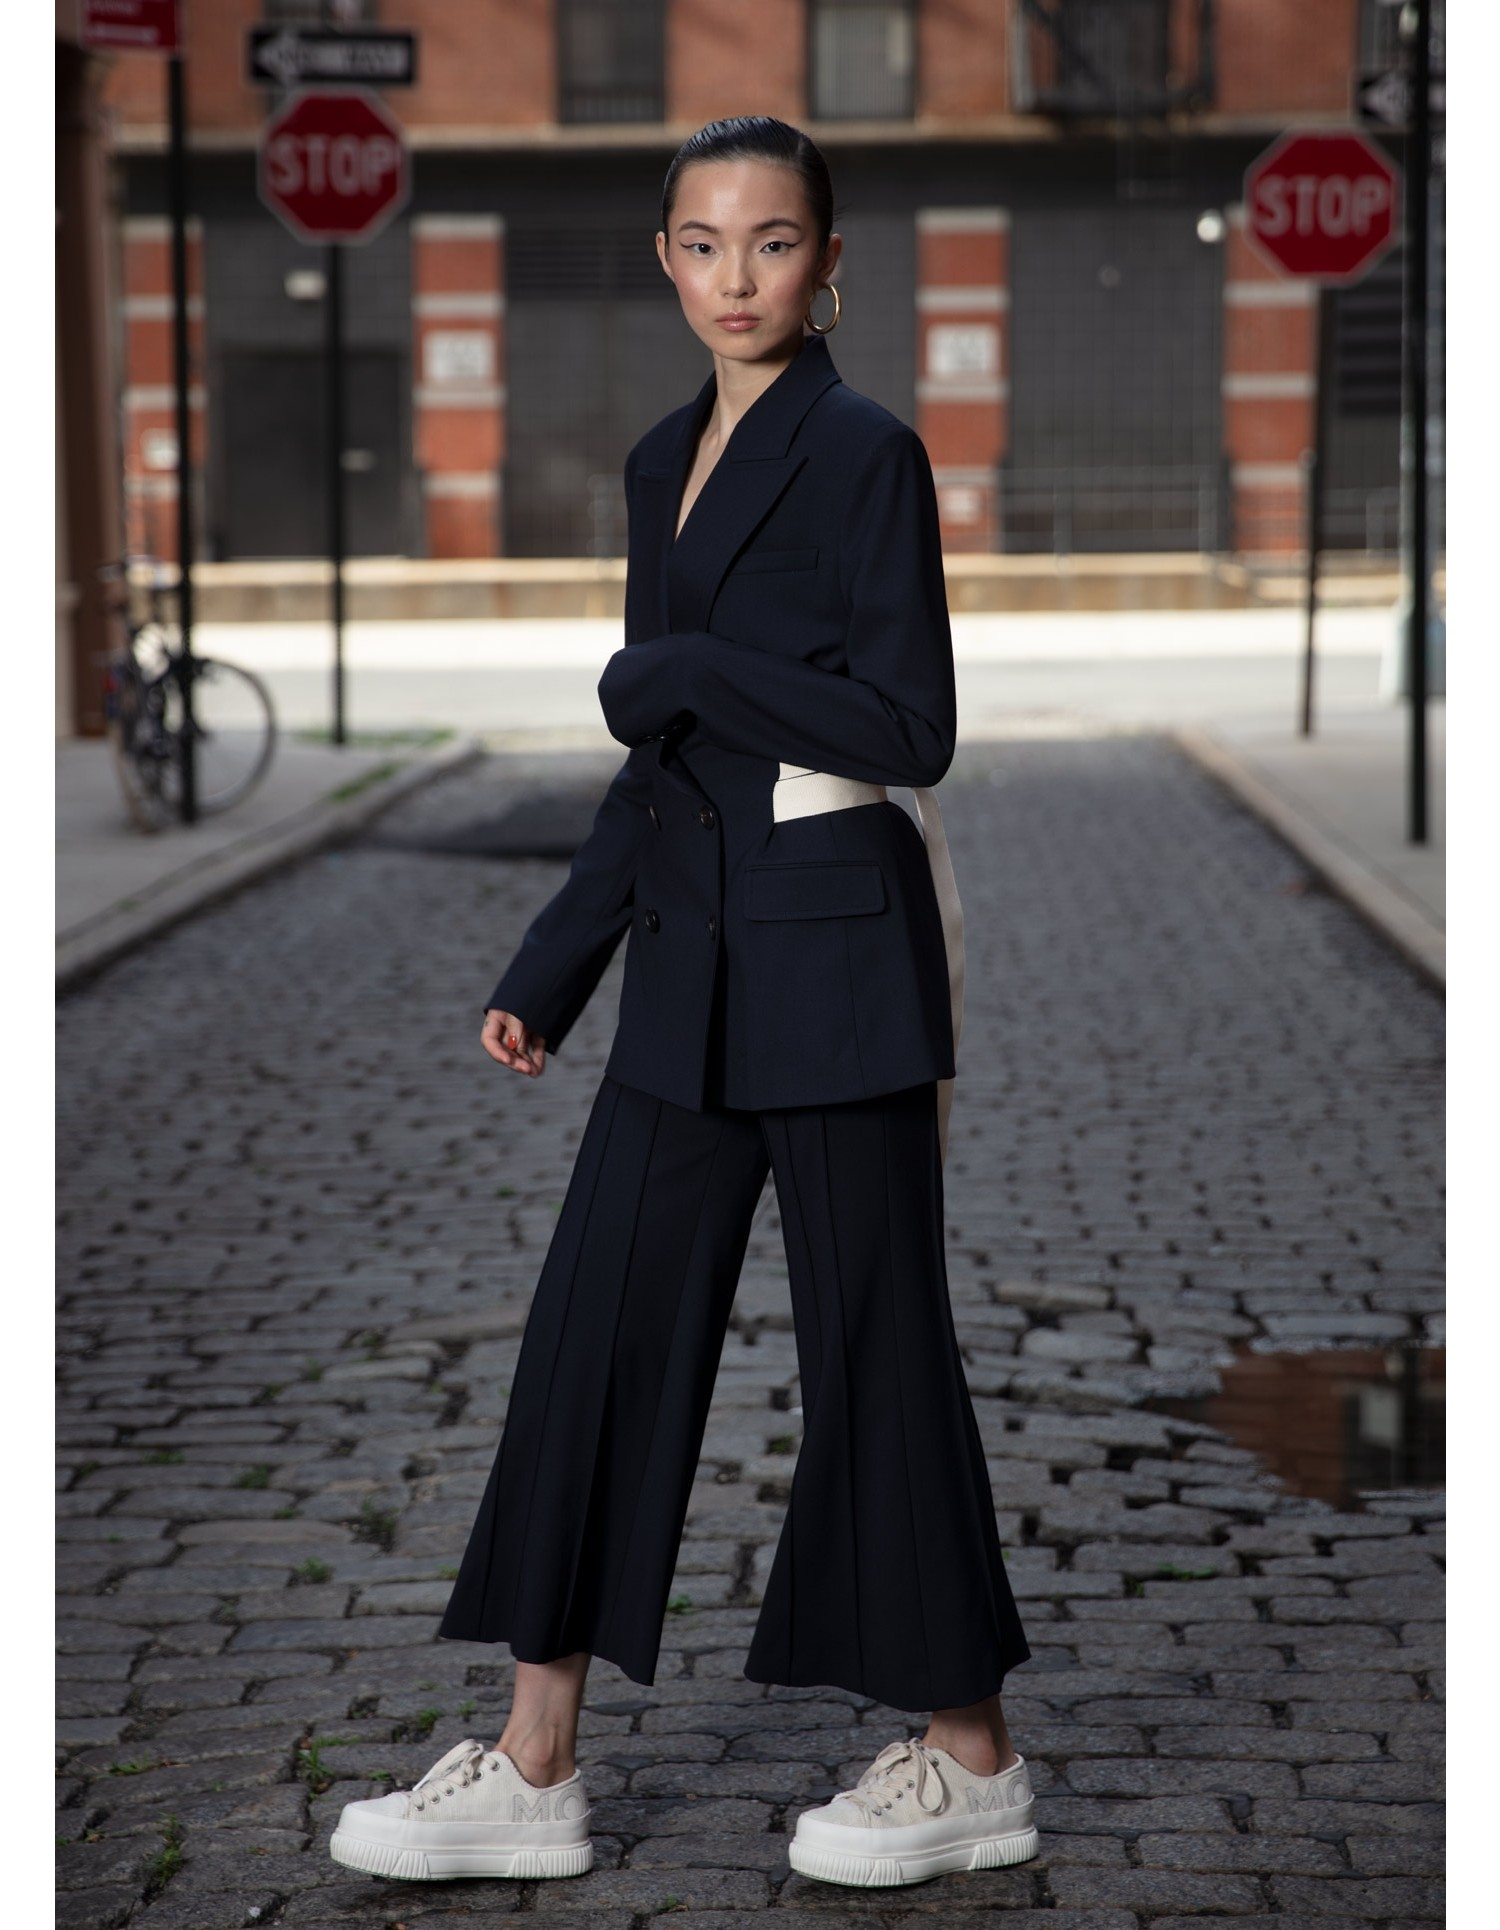 MONSE Cropped Flare Pintuck Pant in Midnight on Model Full Front View